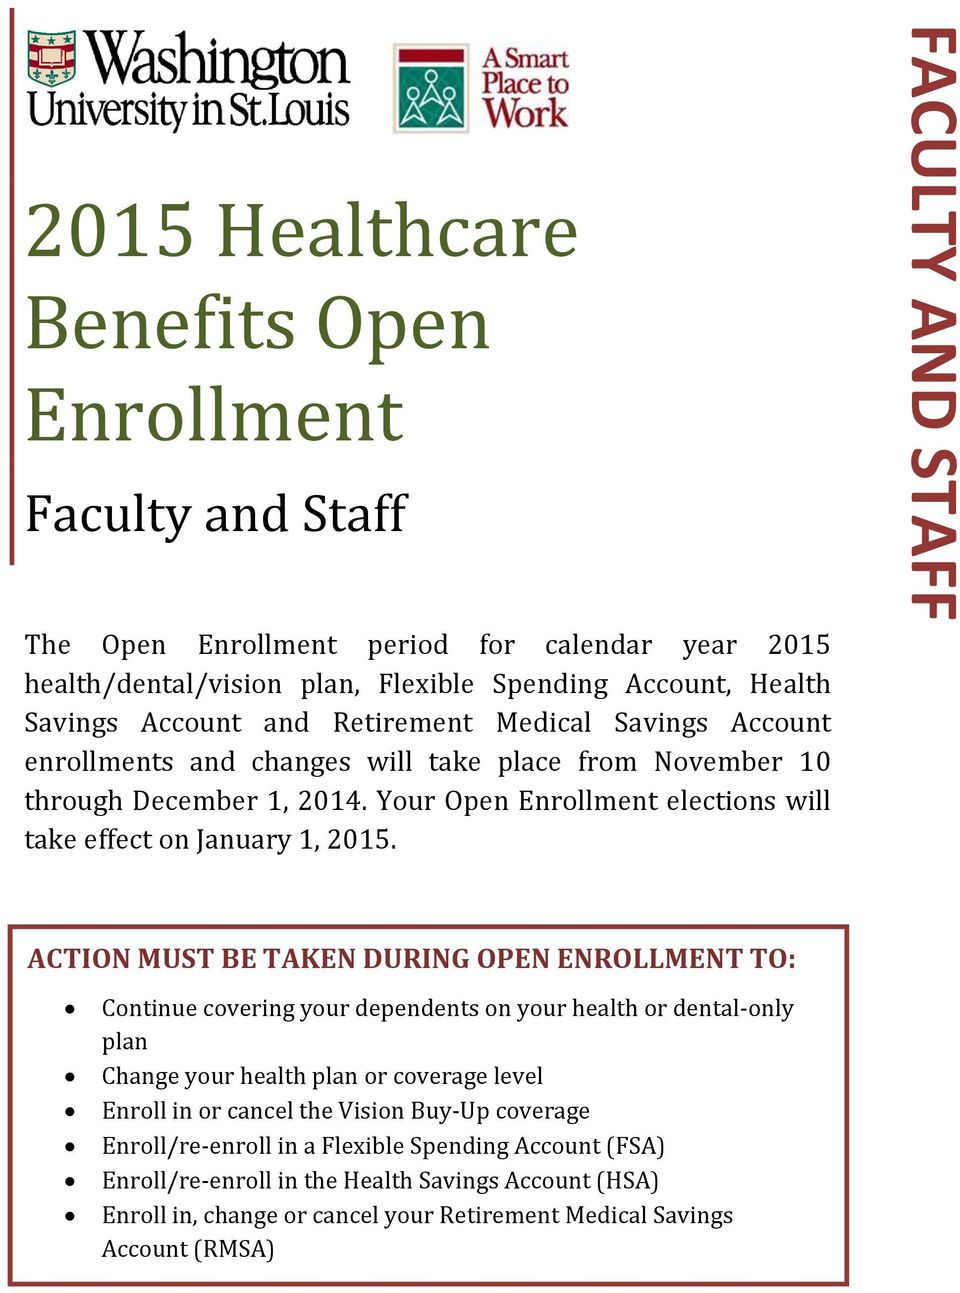 Your Open Enrollment elections will take effect on January 1, 2015.